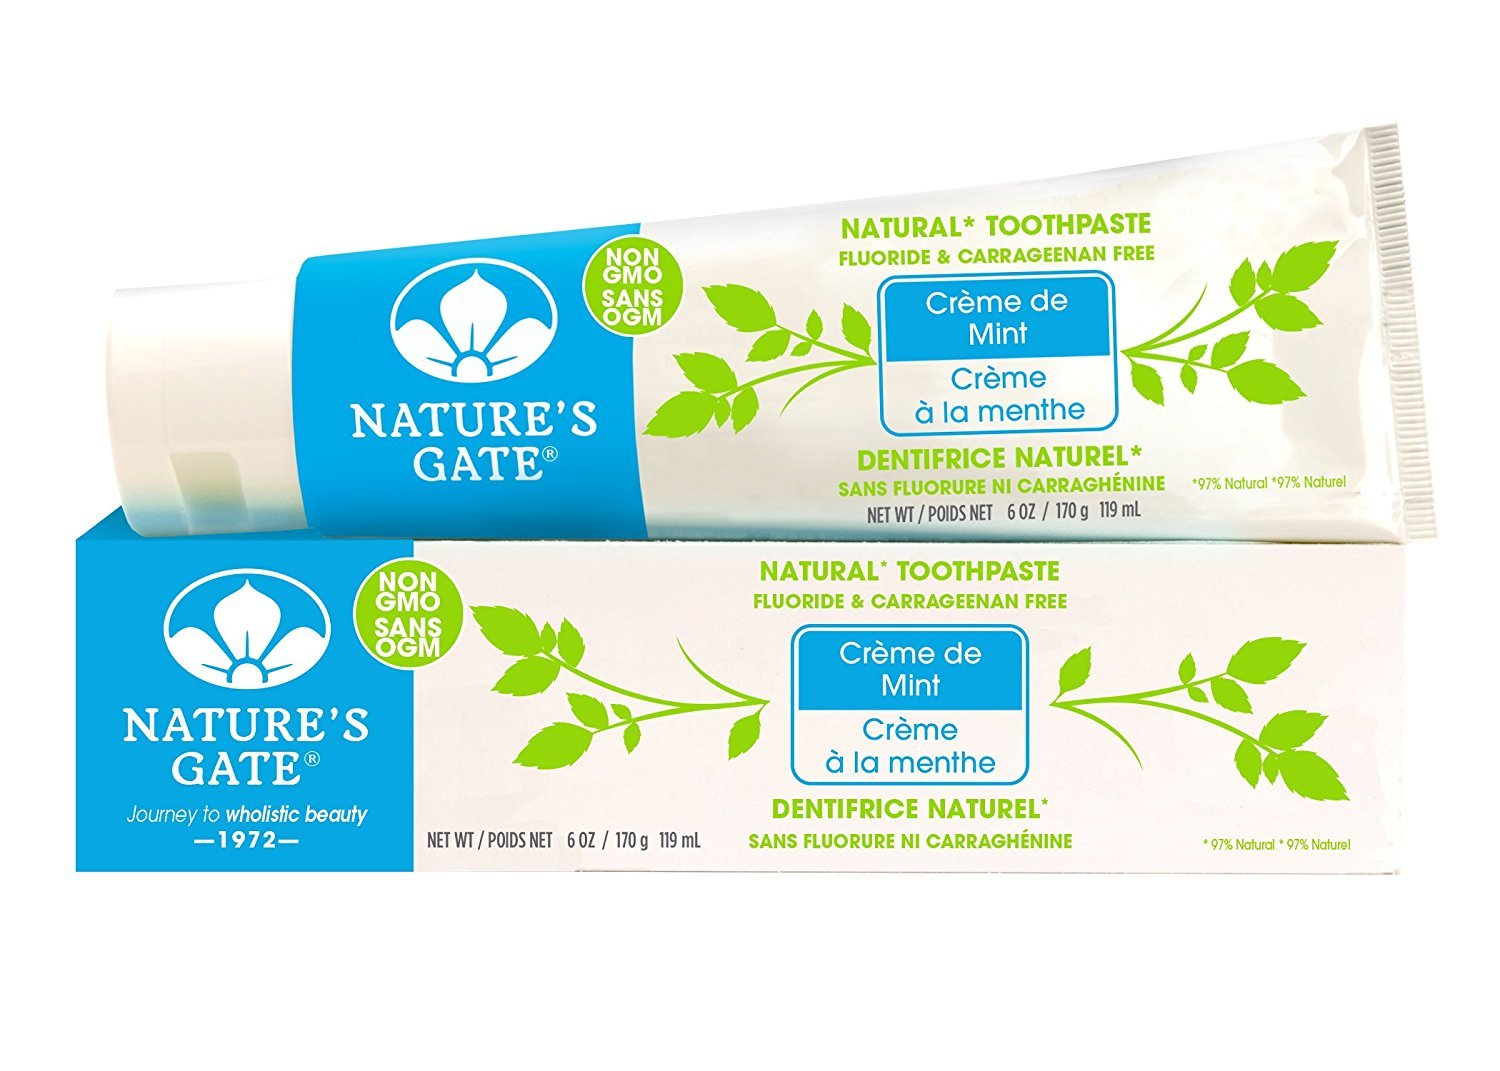 Nature's Gate Natural Toothpaste Herbal Creme de Mint, 6 Ounce (Pack of 2)